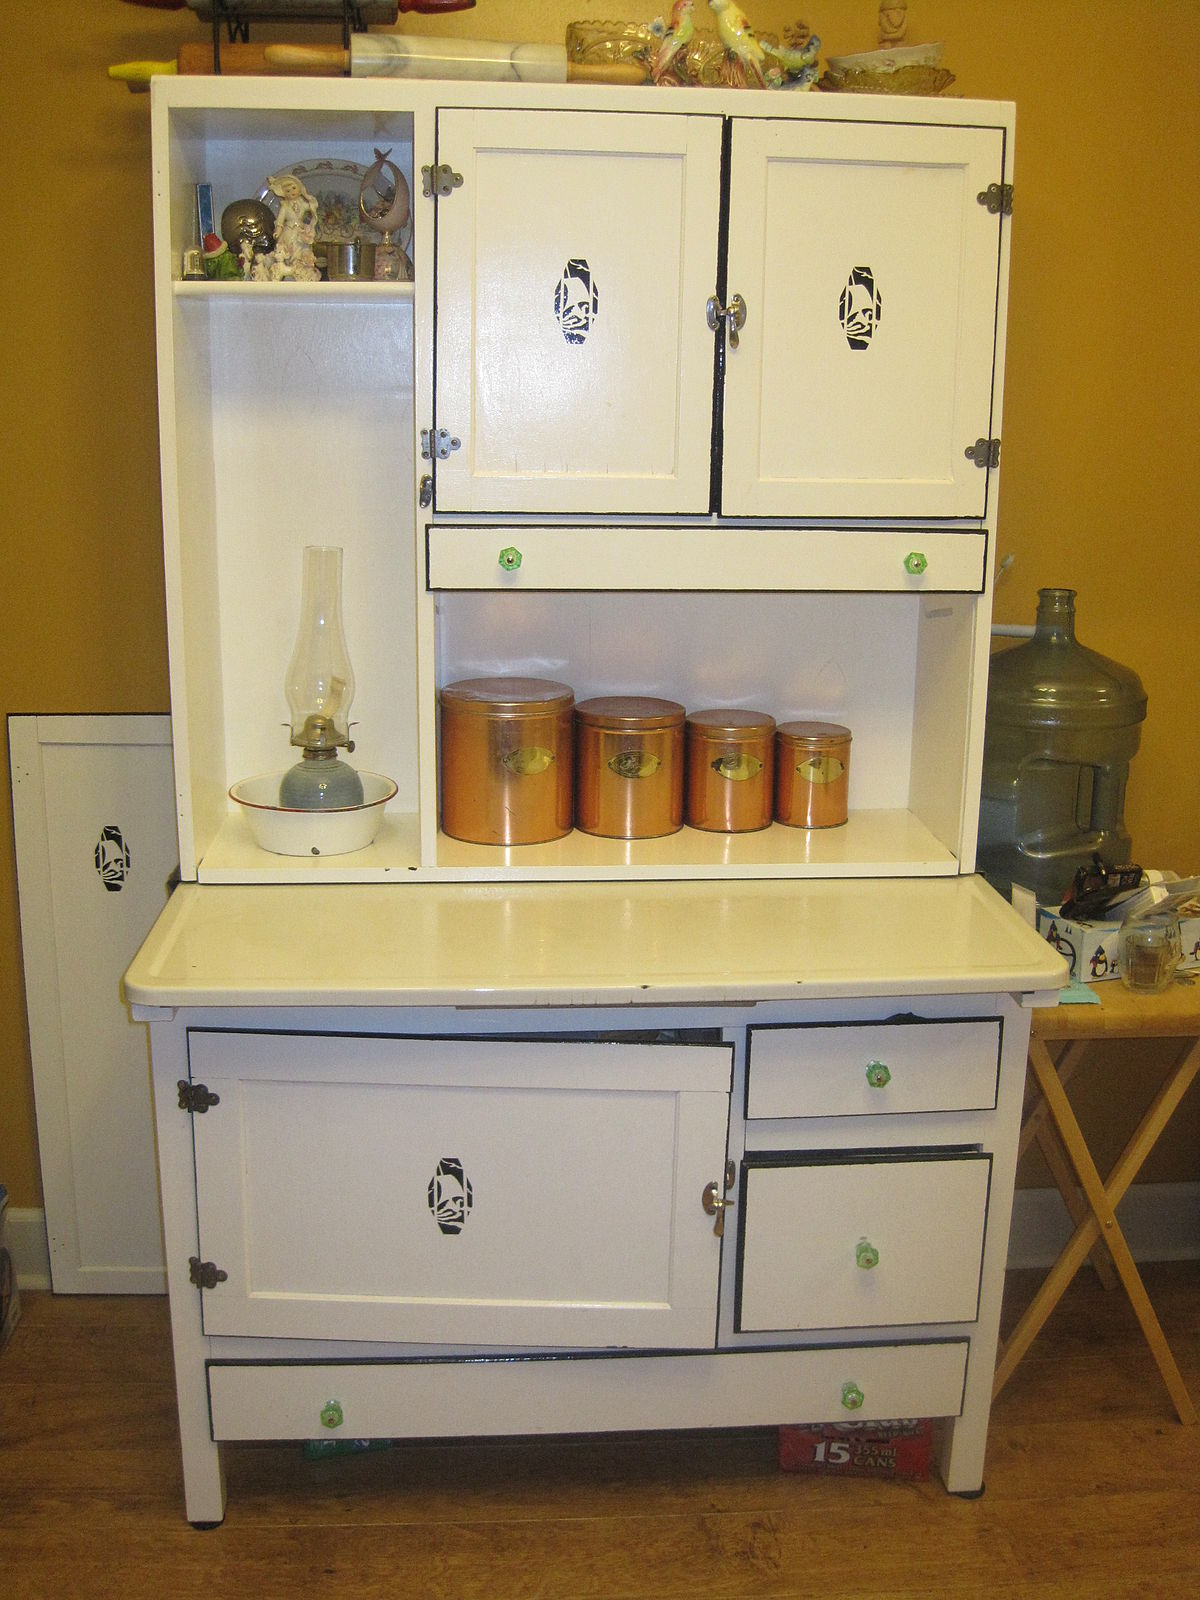 Kitchen Cabinet Acessories Carpenter Trash Can Insert Pegs